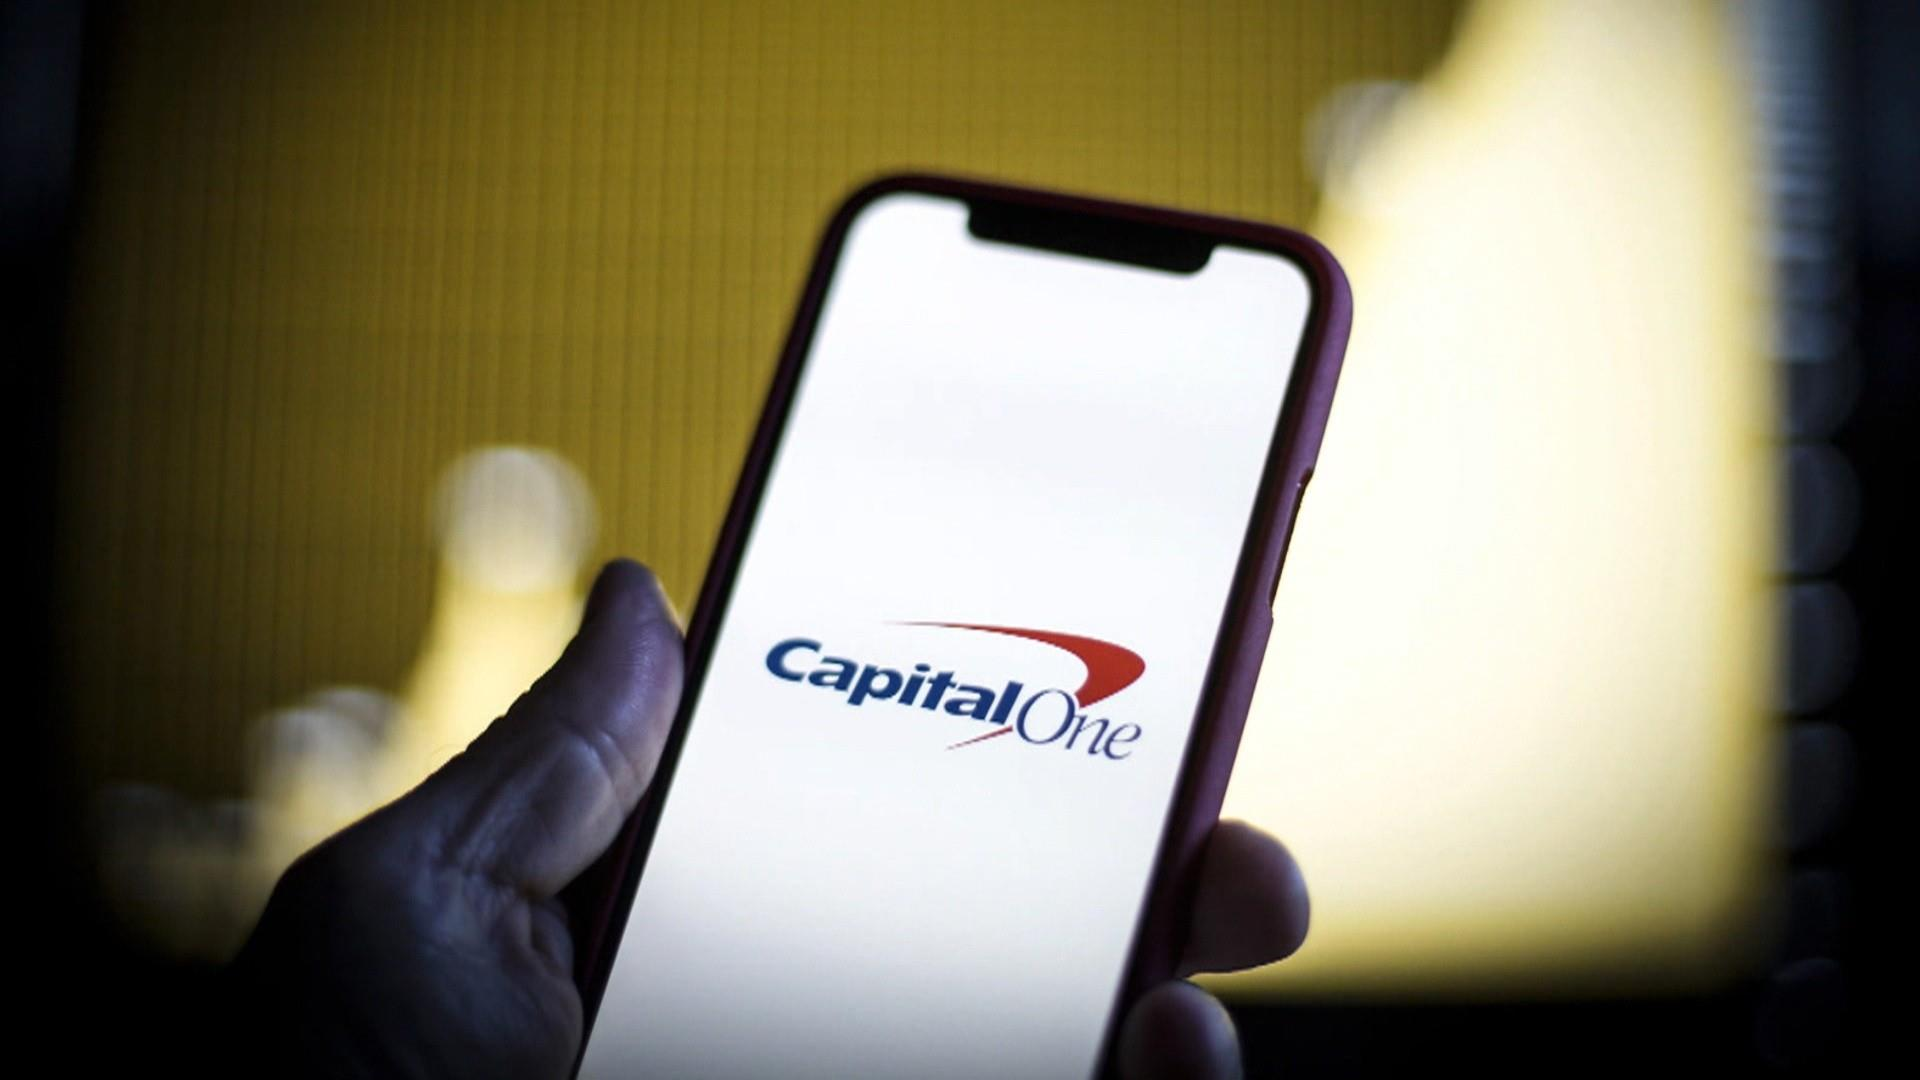 How To Protect Yourself After Capital One Data Breach